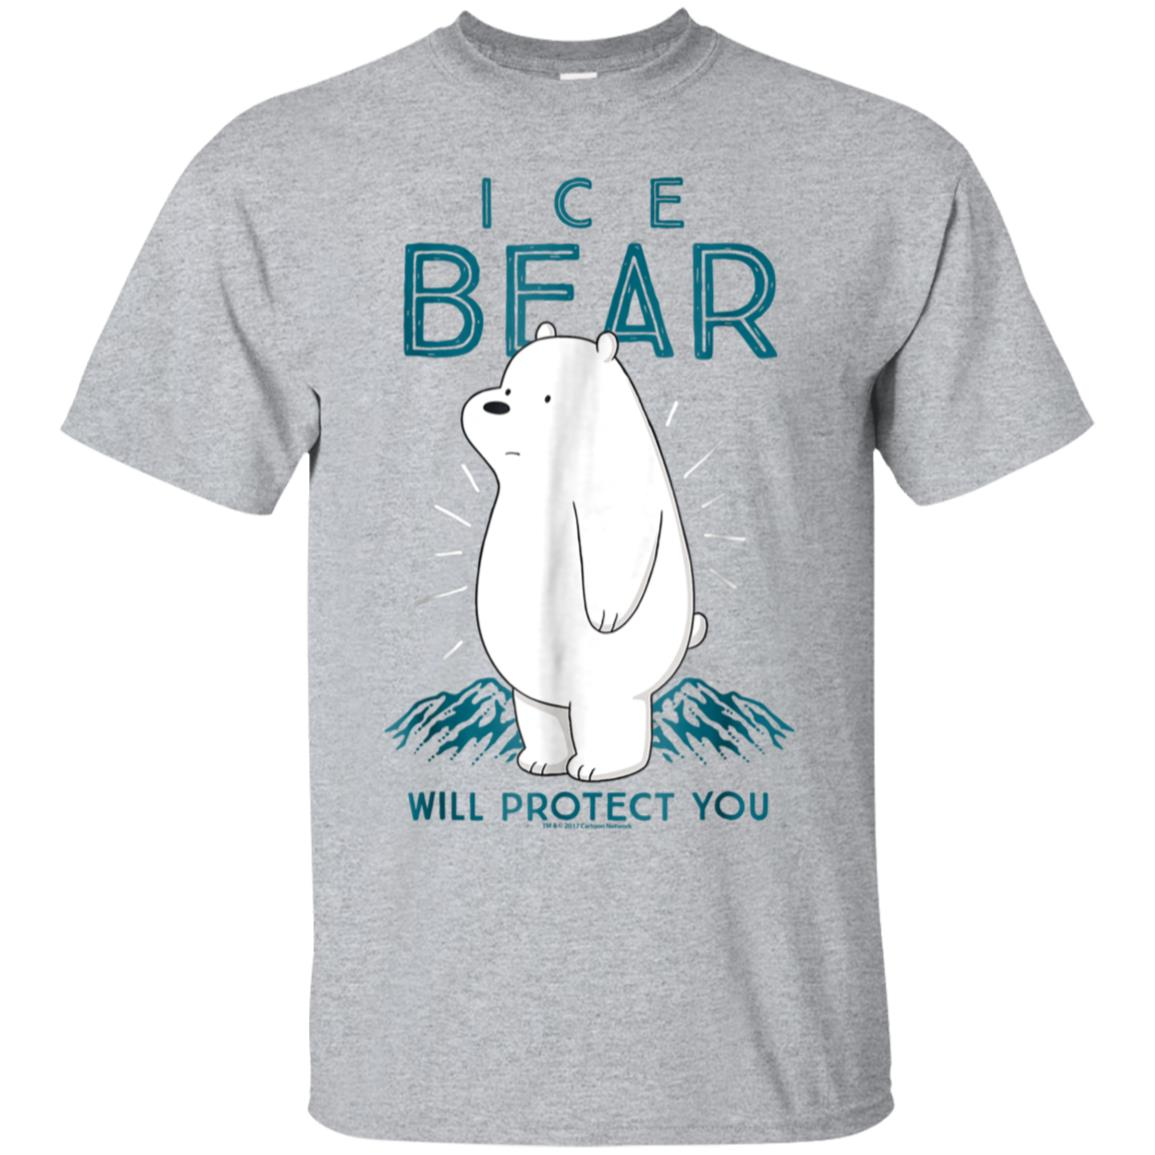 CN We Bare Bears Ice Bear Will Protect You Graphic T-Shirt 99promocode